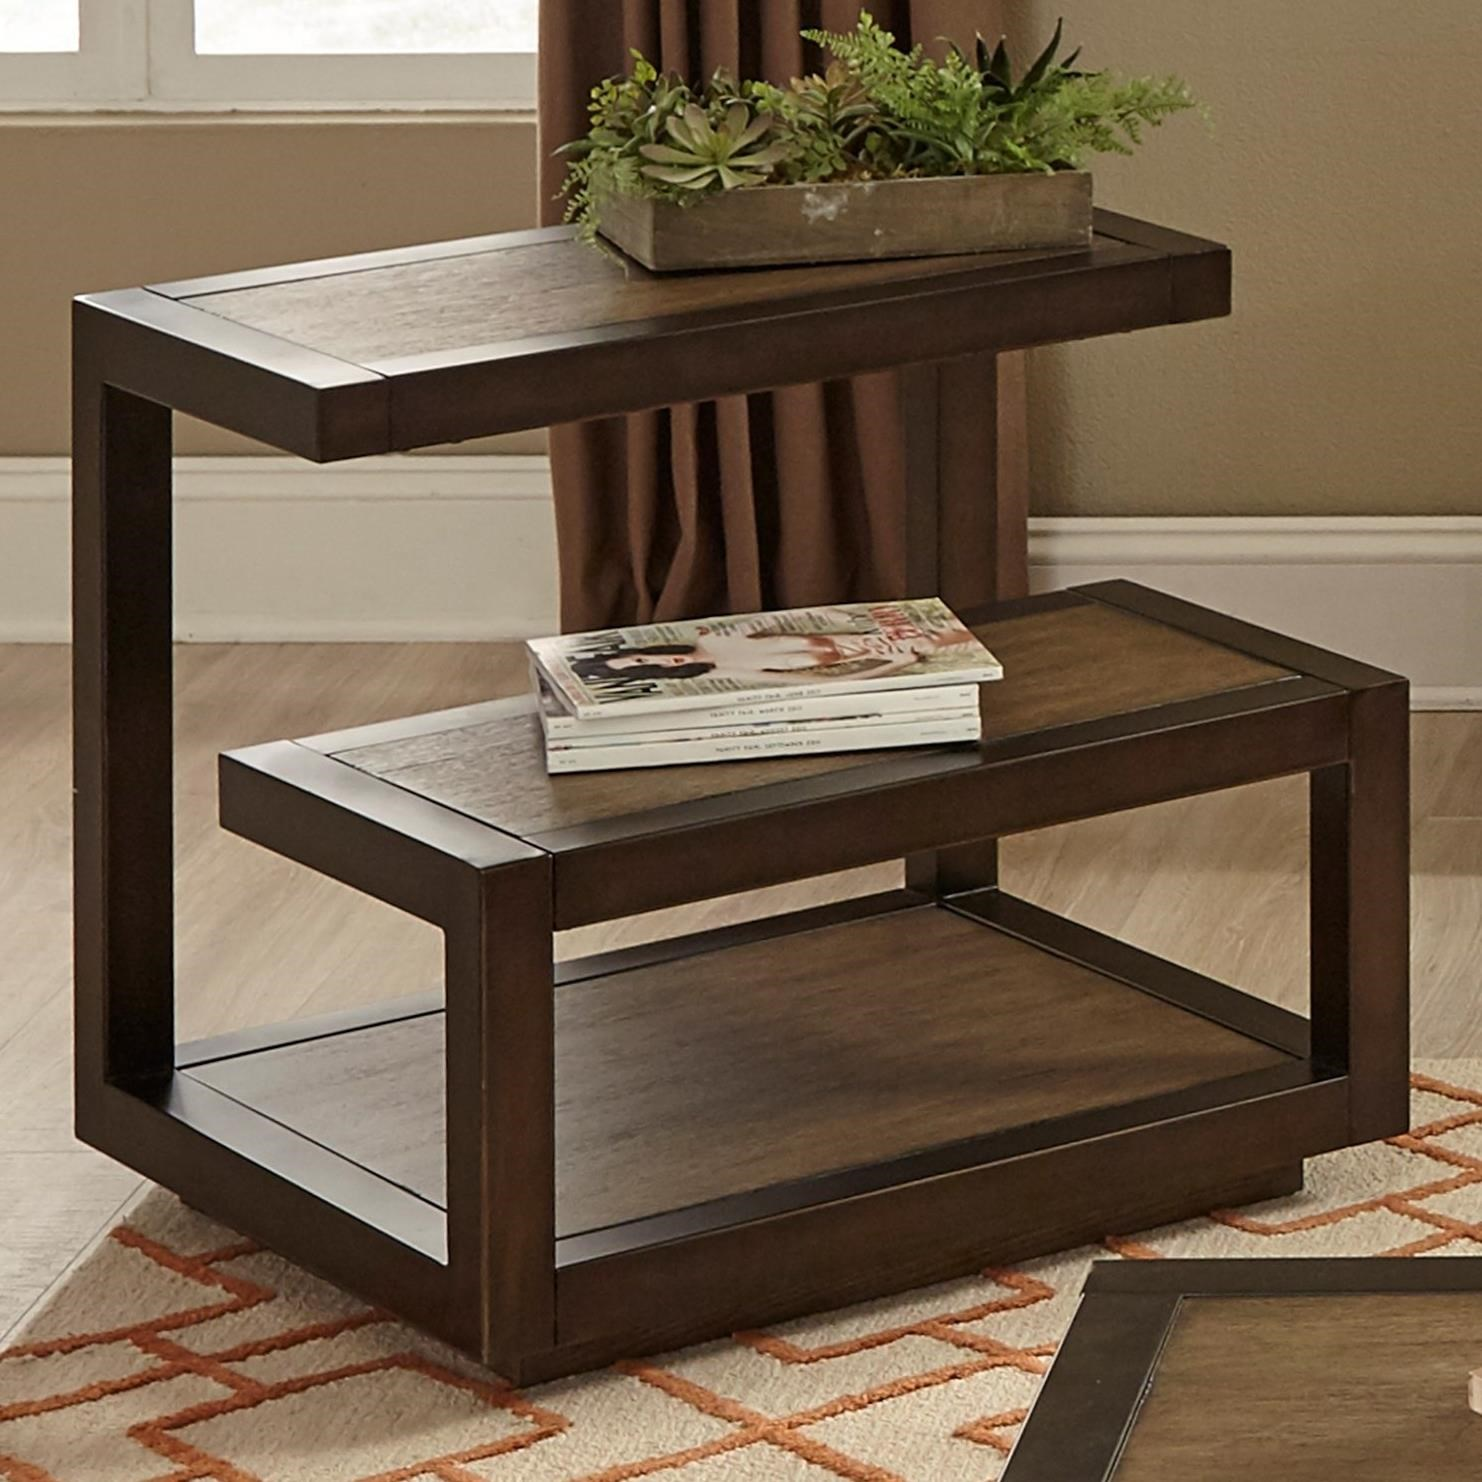 Liberty Furniture Bennett Point Mid-Century Modern End Table - Item Number: 463-OT1020